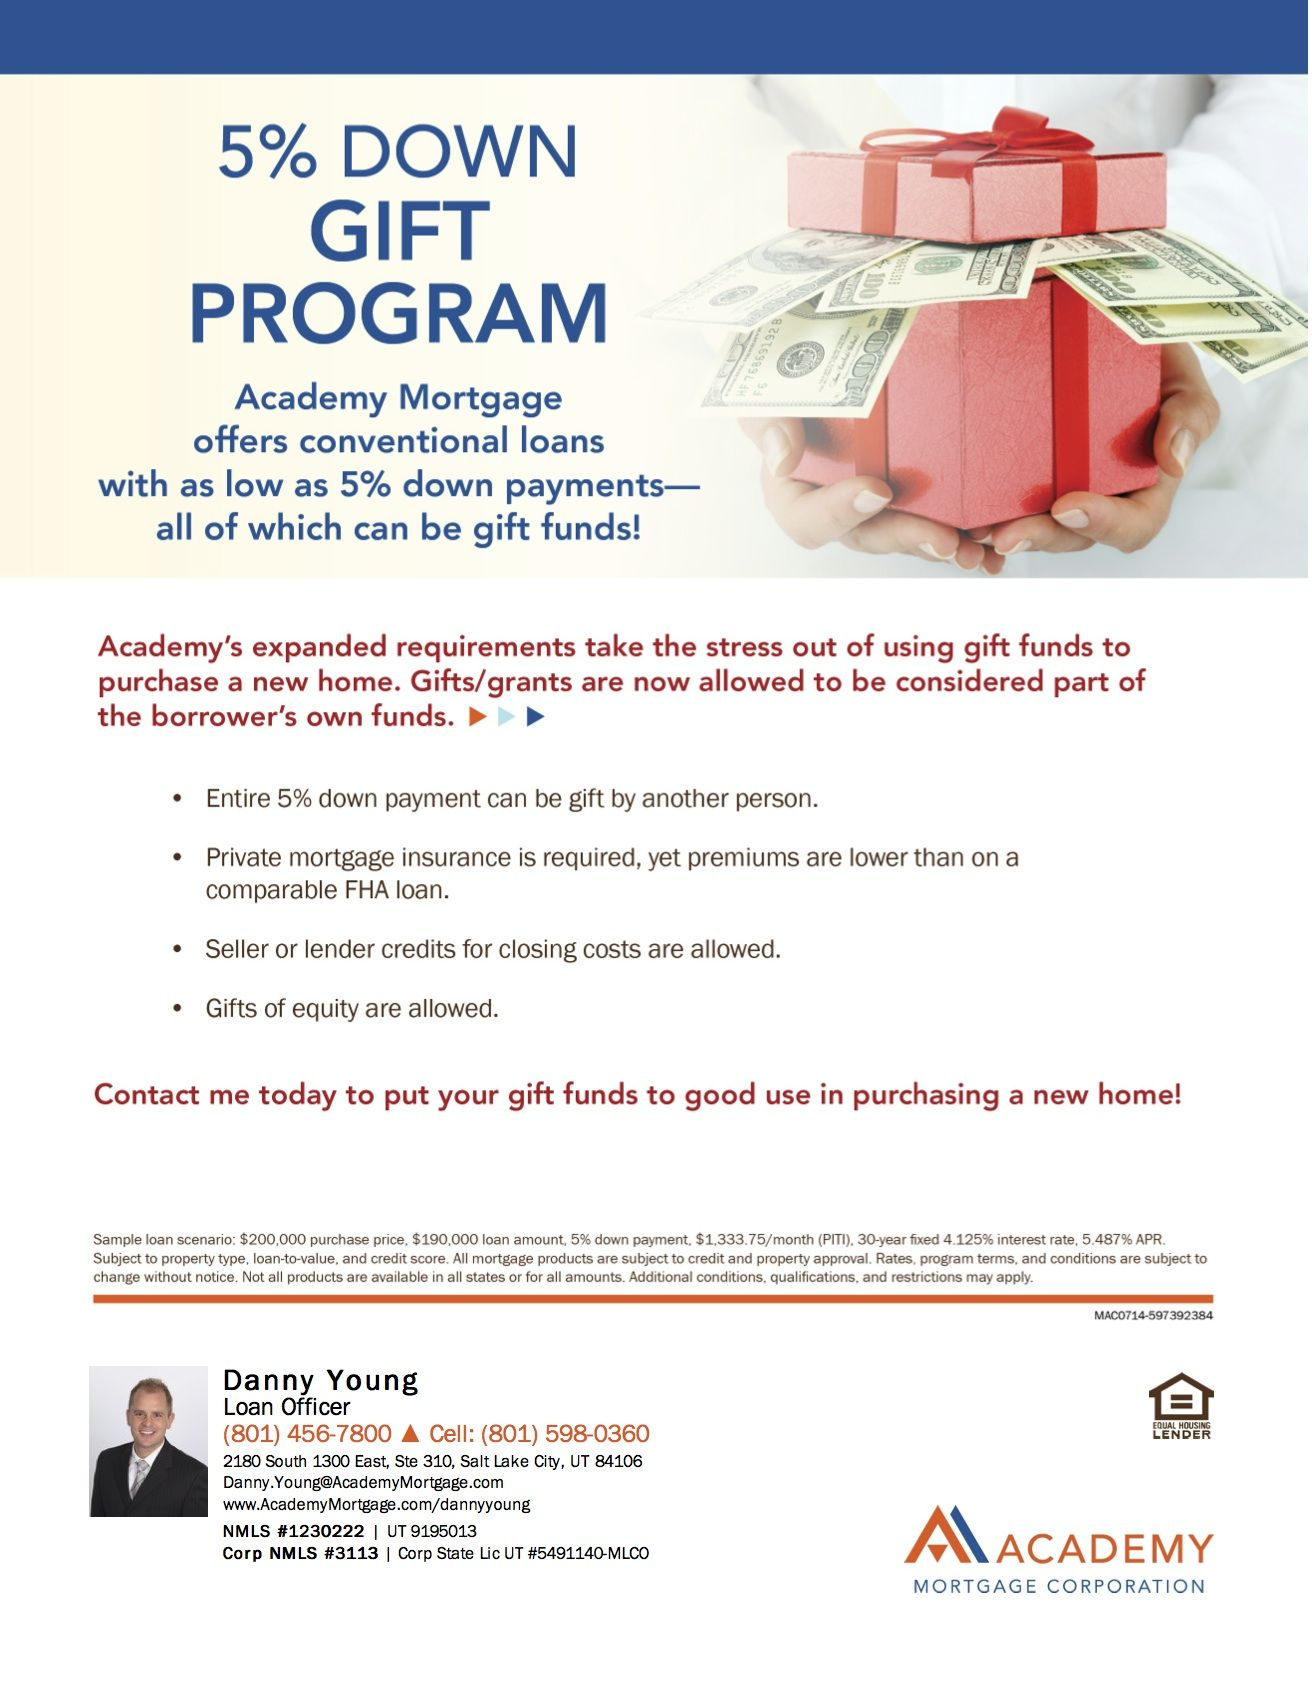 5 Down Gift Program On Conventional Loans With